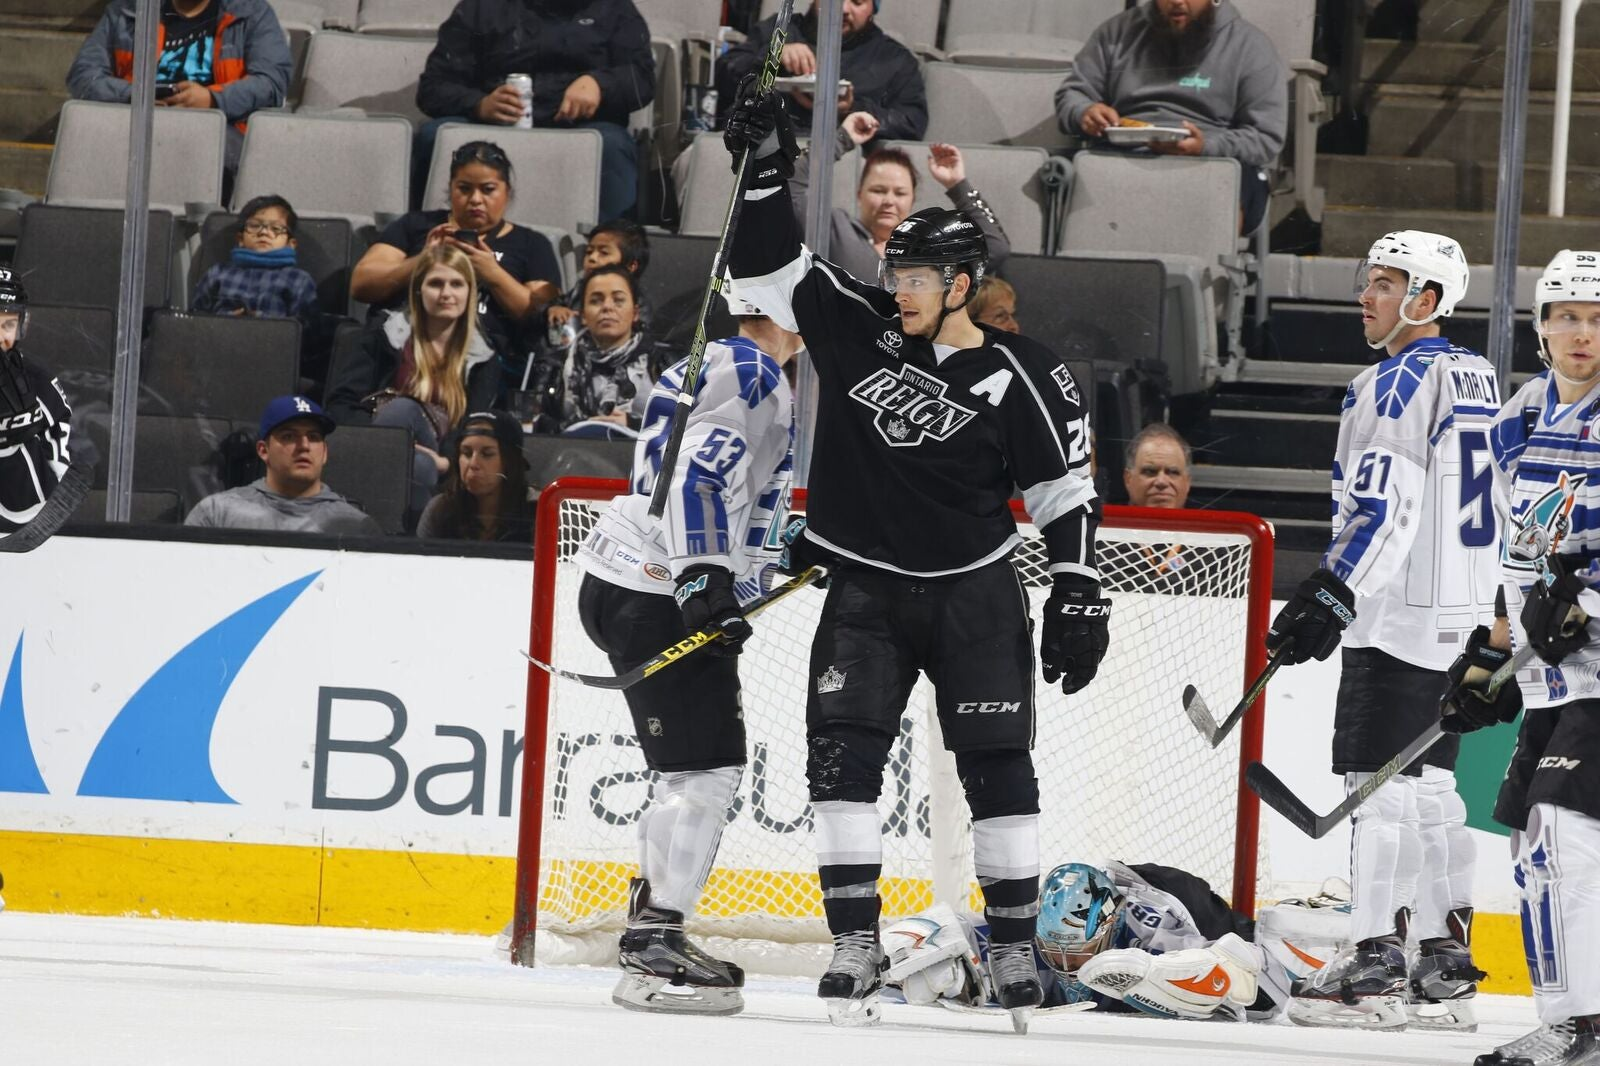 2016-03-13 - Reign win 4-1 Barracuda